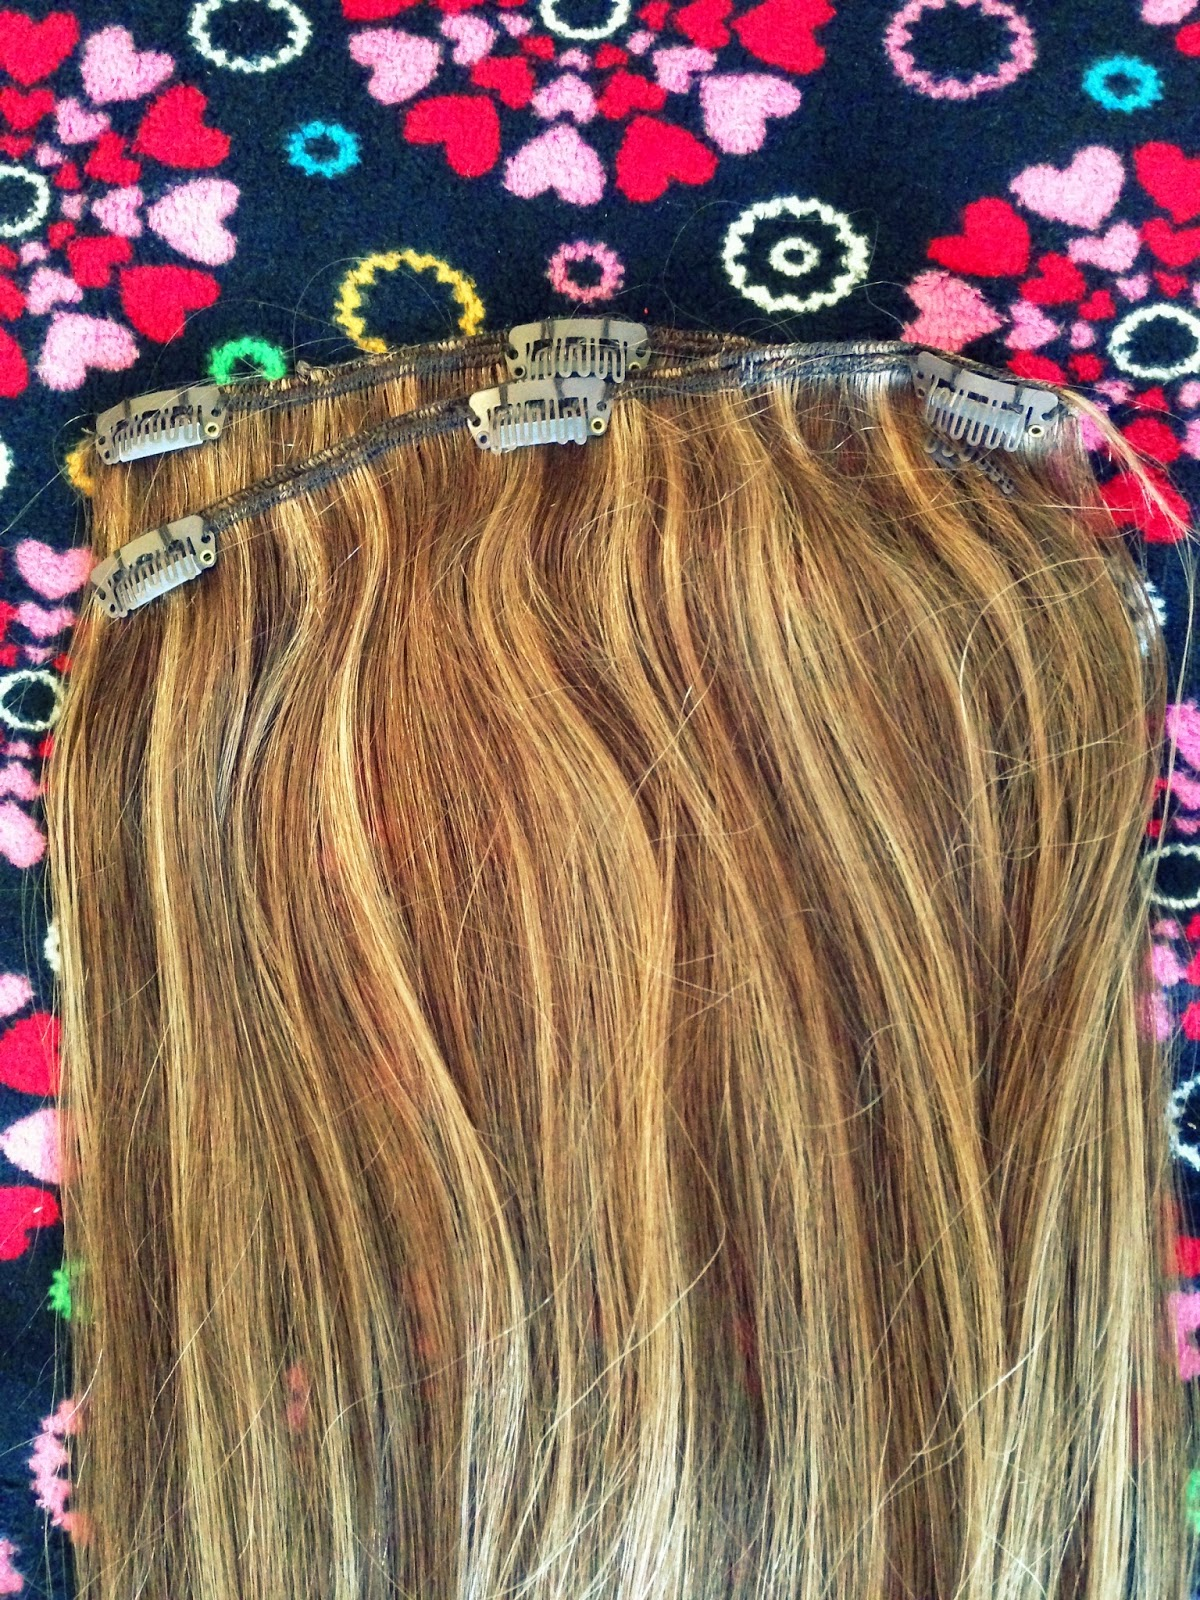 hair extensions human hair extensions cheap www.sandysandhu.co